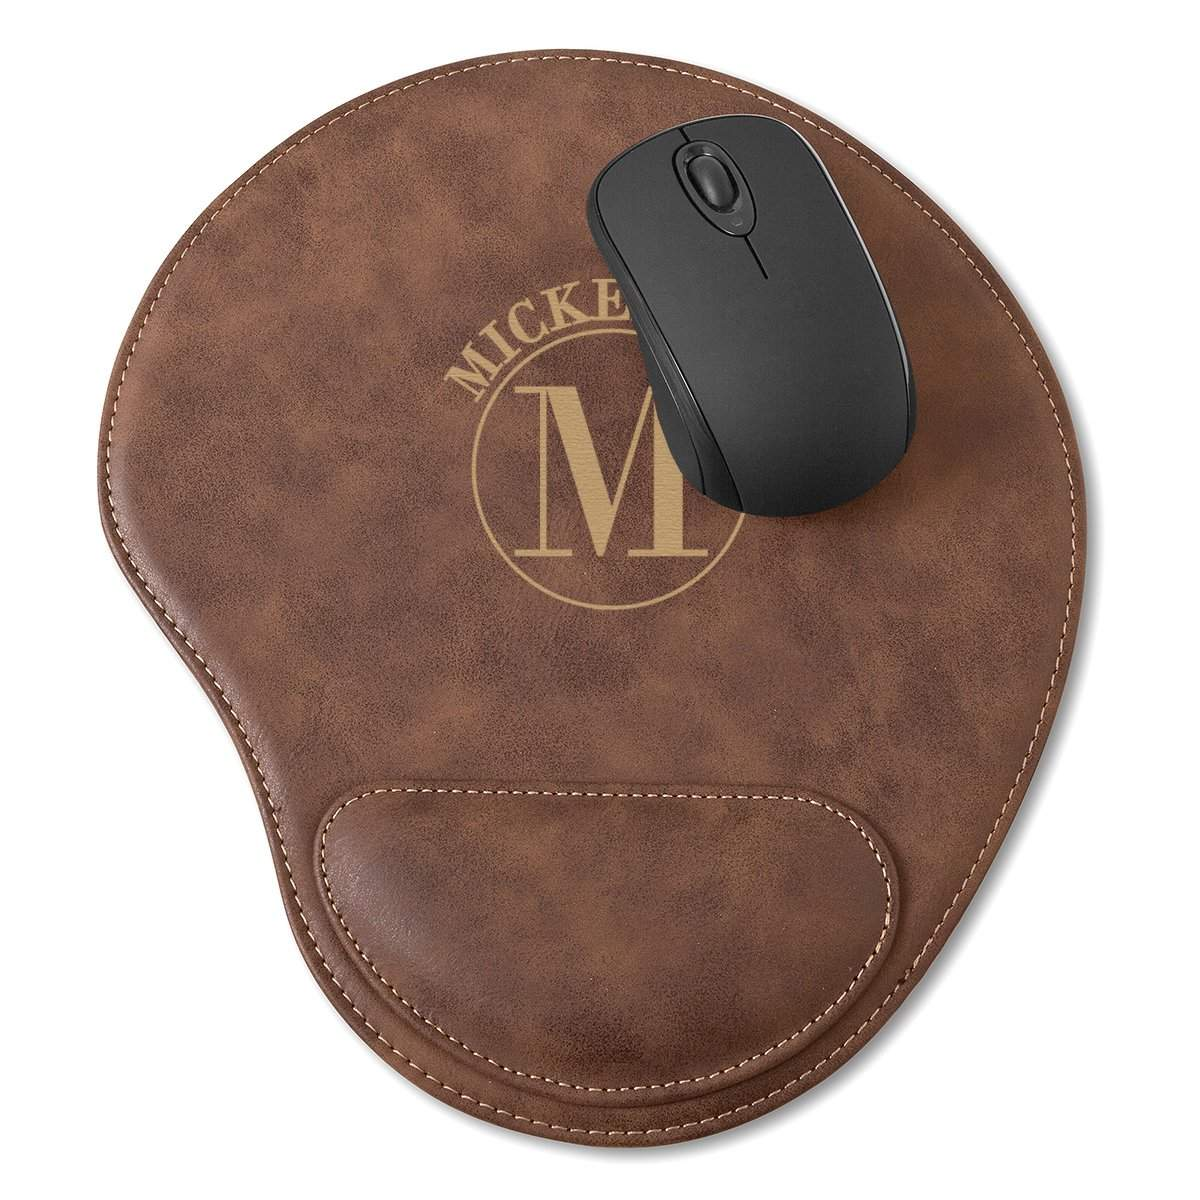 Rustic Vegan Leather Personalized Mouse Pad